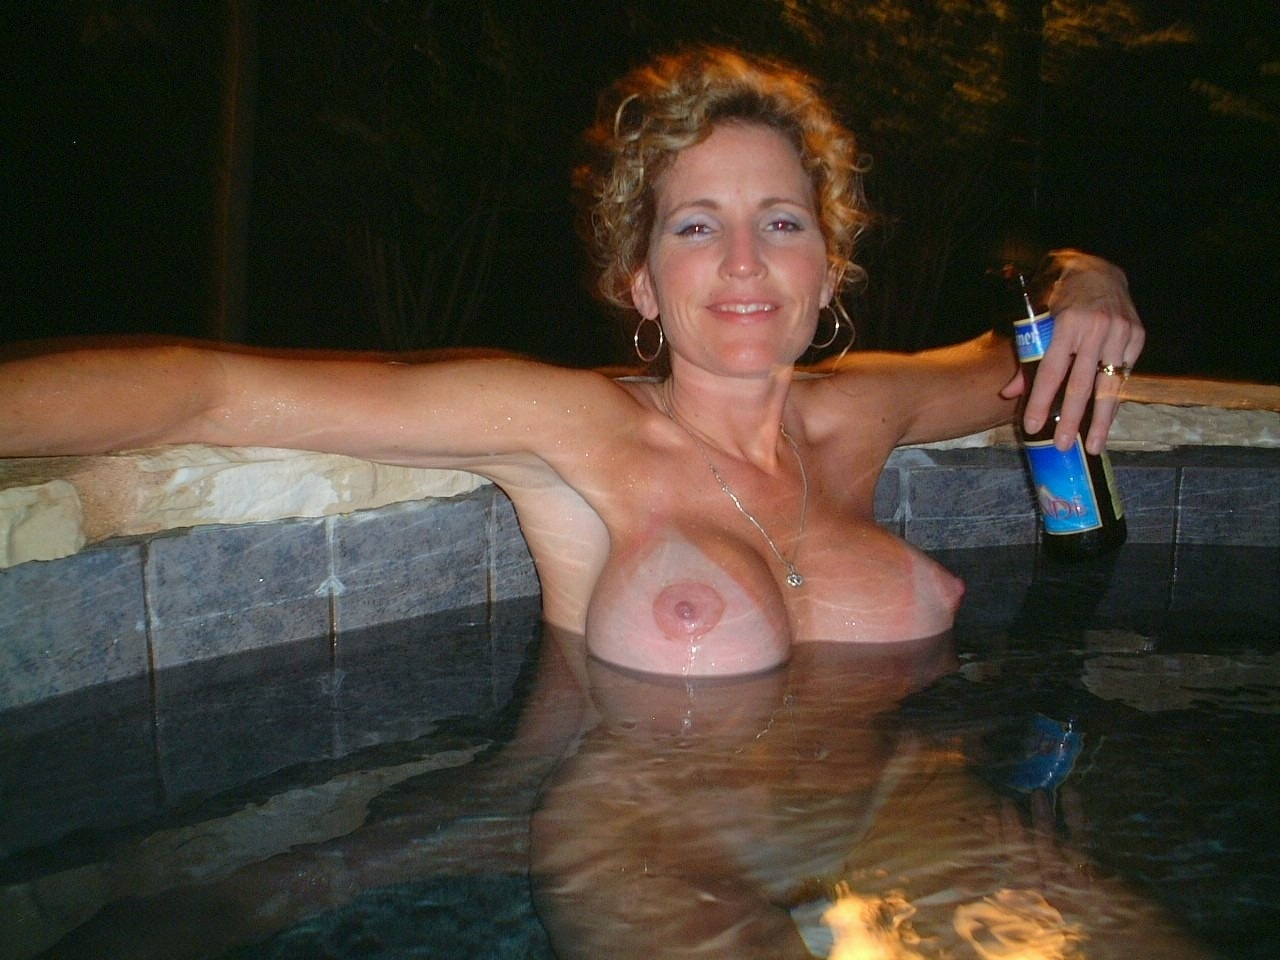 skinny girl with big breast naked shower